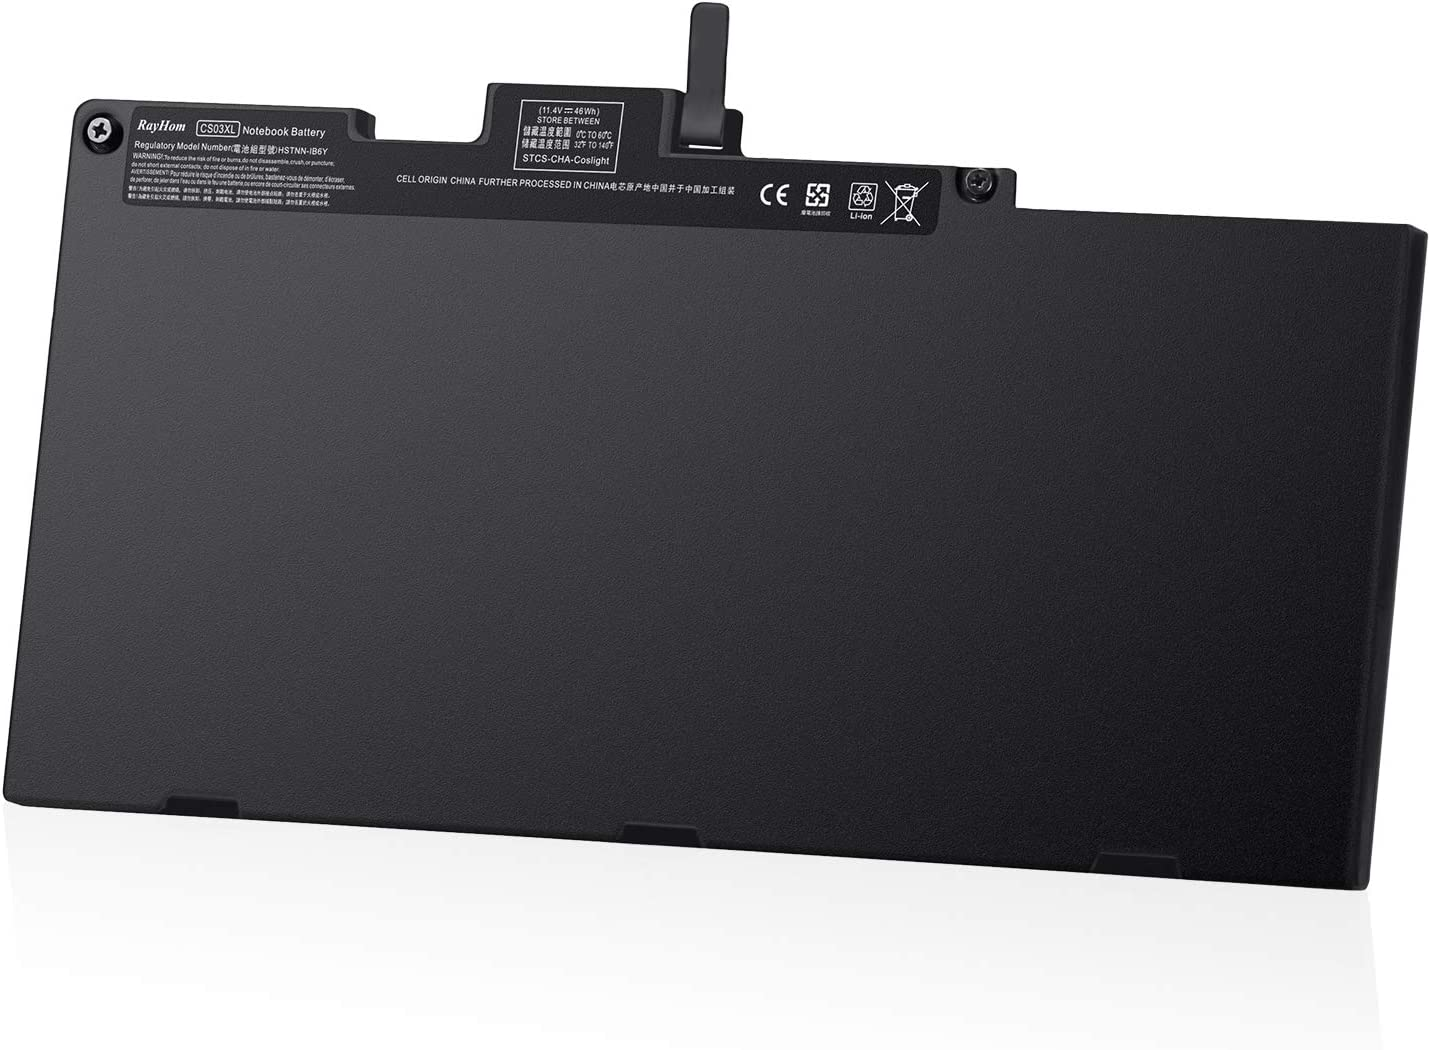 RayHom CS03XL New Laptop Battery - for HP EliteBook 745 755 840 848 850 G3 G4 HSTNN-UB6S HSTNN-IB6Y 800231-141 CS03046XL 800231-1C1 800513-001 ZBook 15u G3 G4 mt42 mt43 Mobile Thin Client